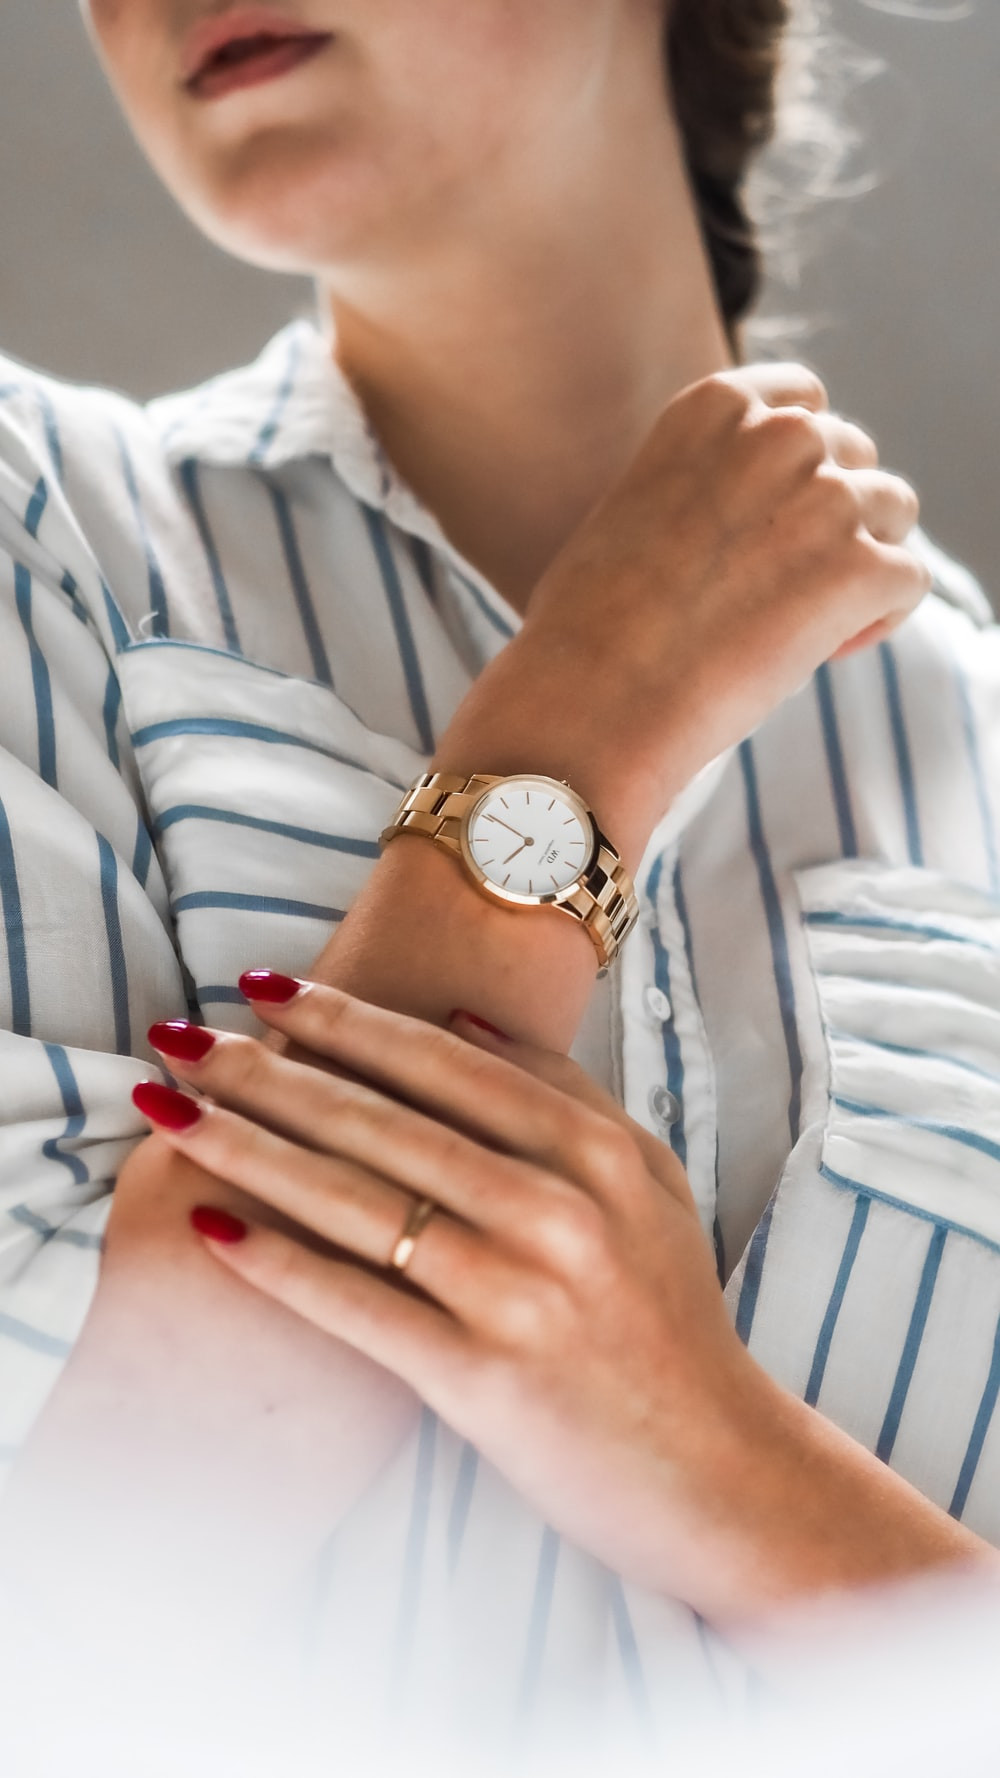 person wearing silver and gold analog watch